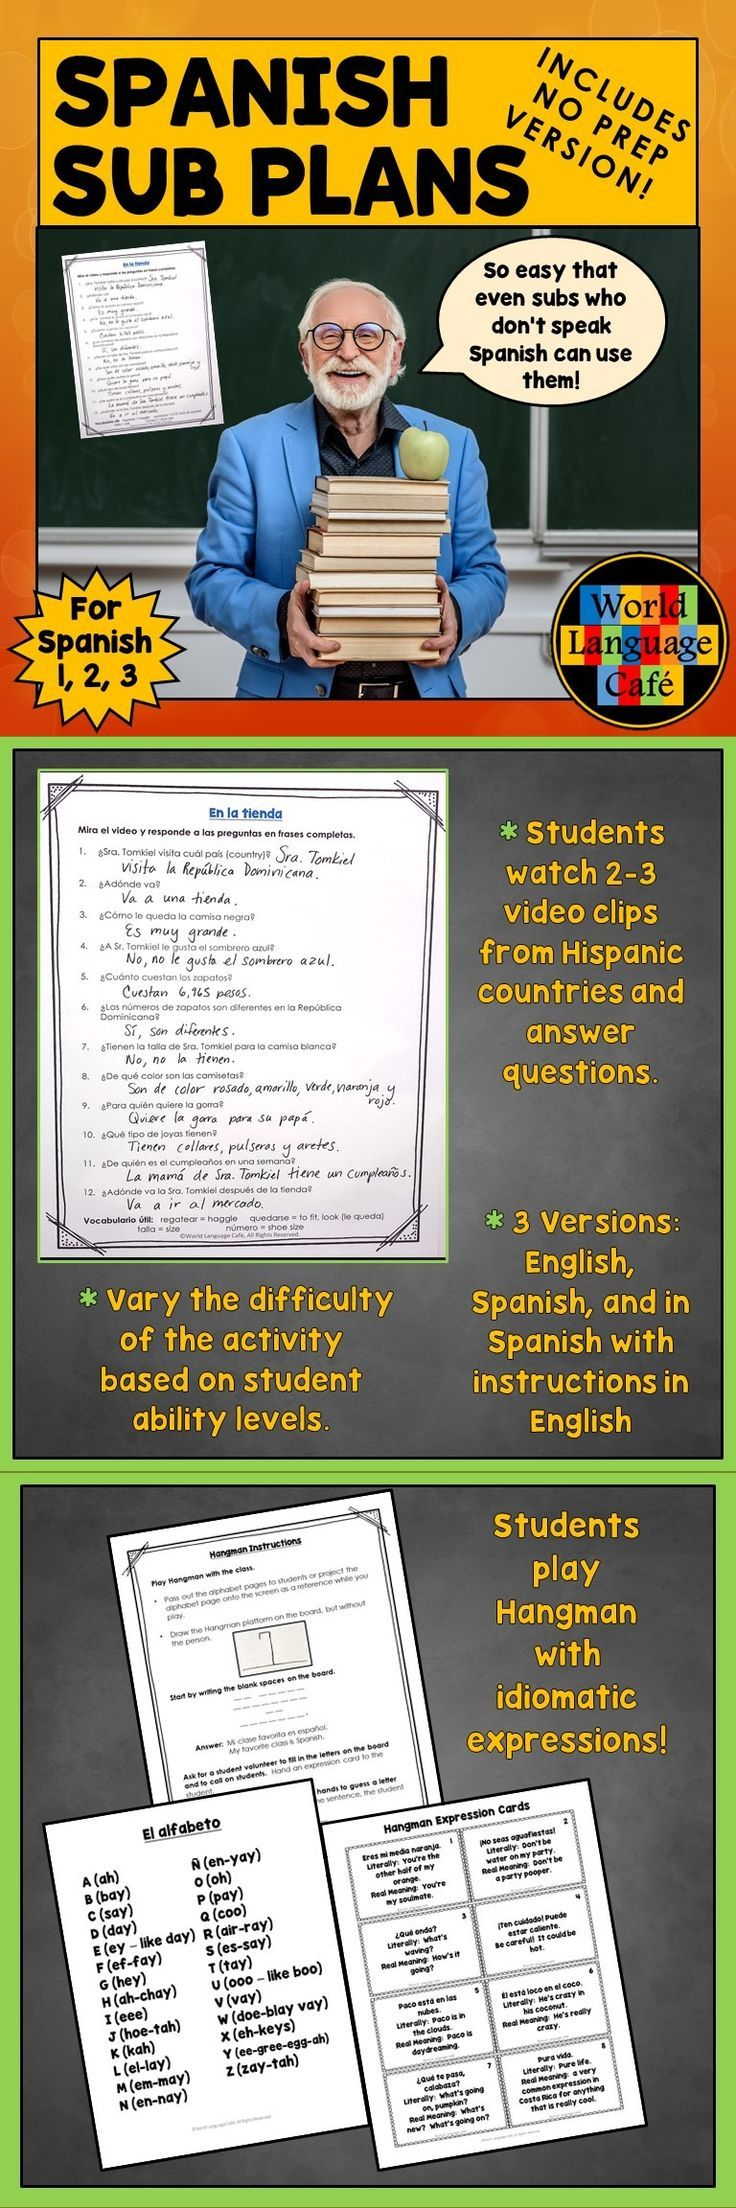 Who wants emergency Spanish sub plans that you can email to your Department Head when you're feeling lousy? Includes 3 versions: emergency, no prep; regular; for Google classroom. Spanish students watch 2-3 short cultural video clips, answer questions, play Hangman while learning Spanish idioms, and learn the Hispanic countries with a word search. Perfect for Spanish subs who don't speak English.